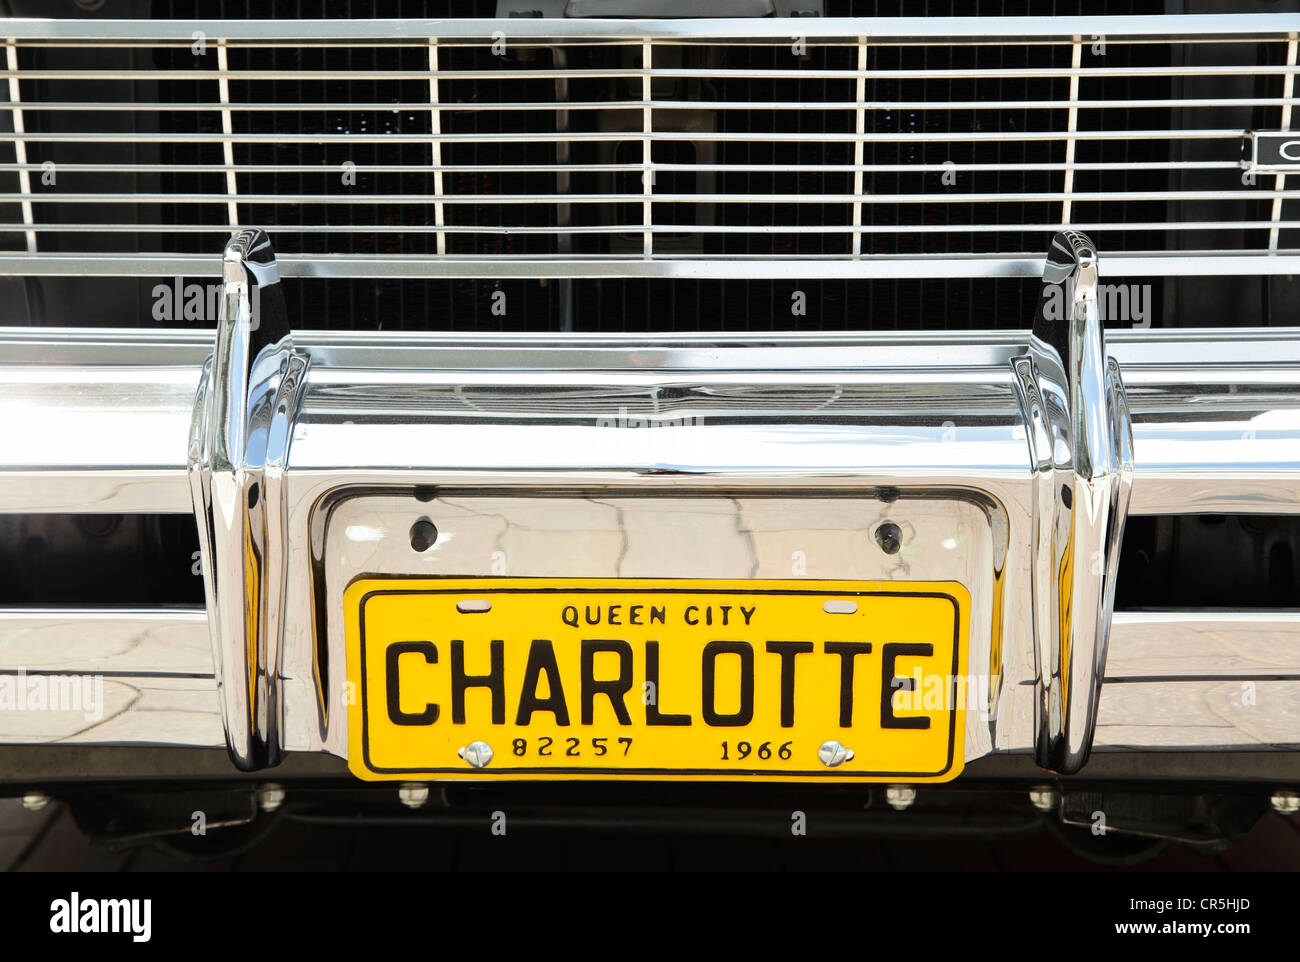 A 1966 Charlotte city tag on the front bumper of a vintage car in ...